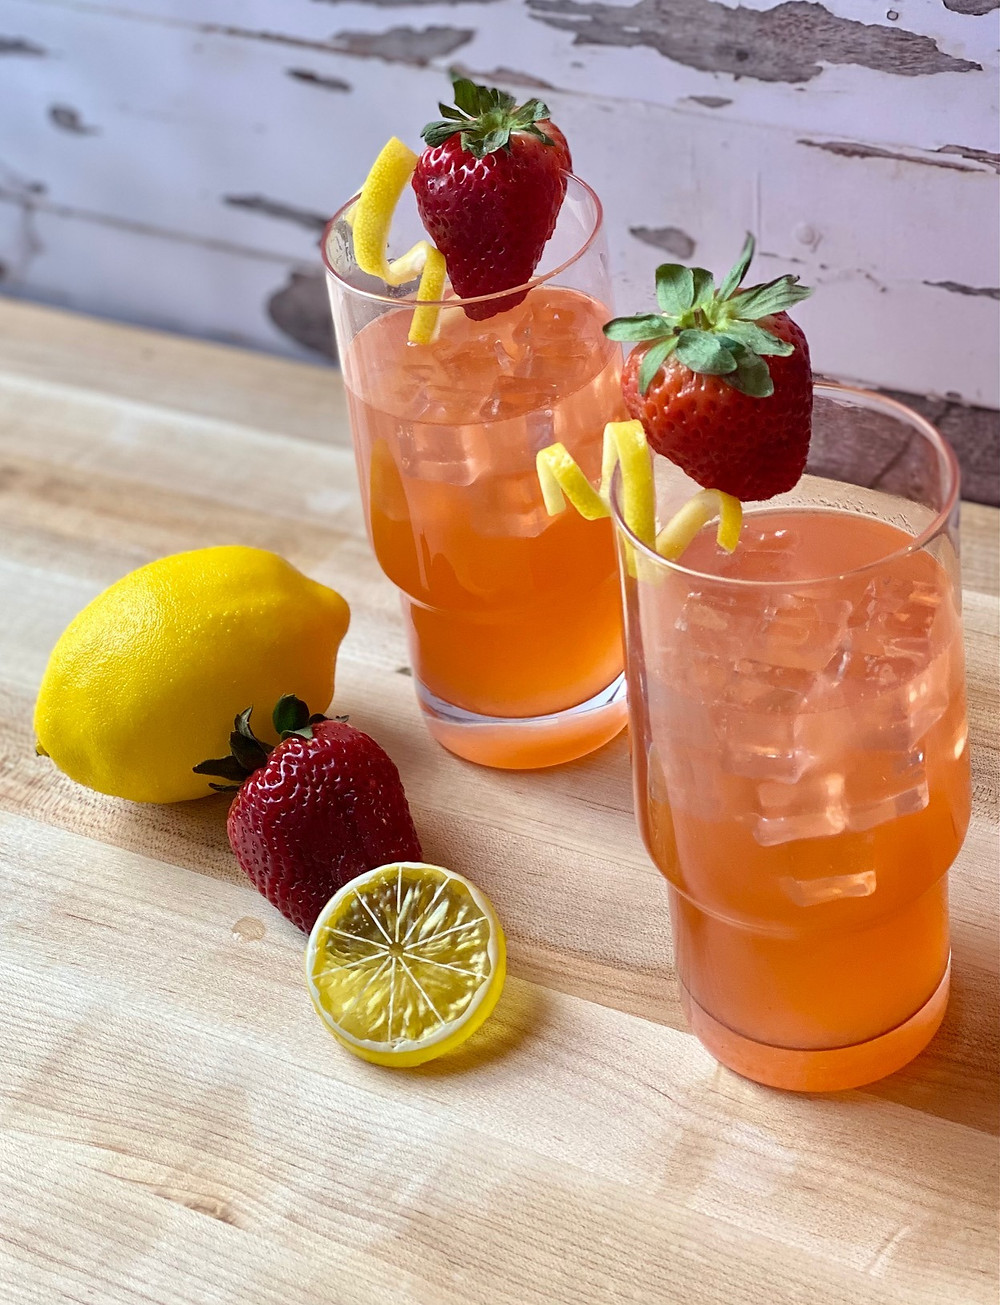 Refreshing cocktails consisting of tequila, strawberry lemonade and lemon and strawberry simple syrup. Garnished with a strawberry and twist of lemon peel.